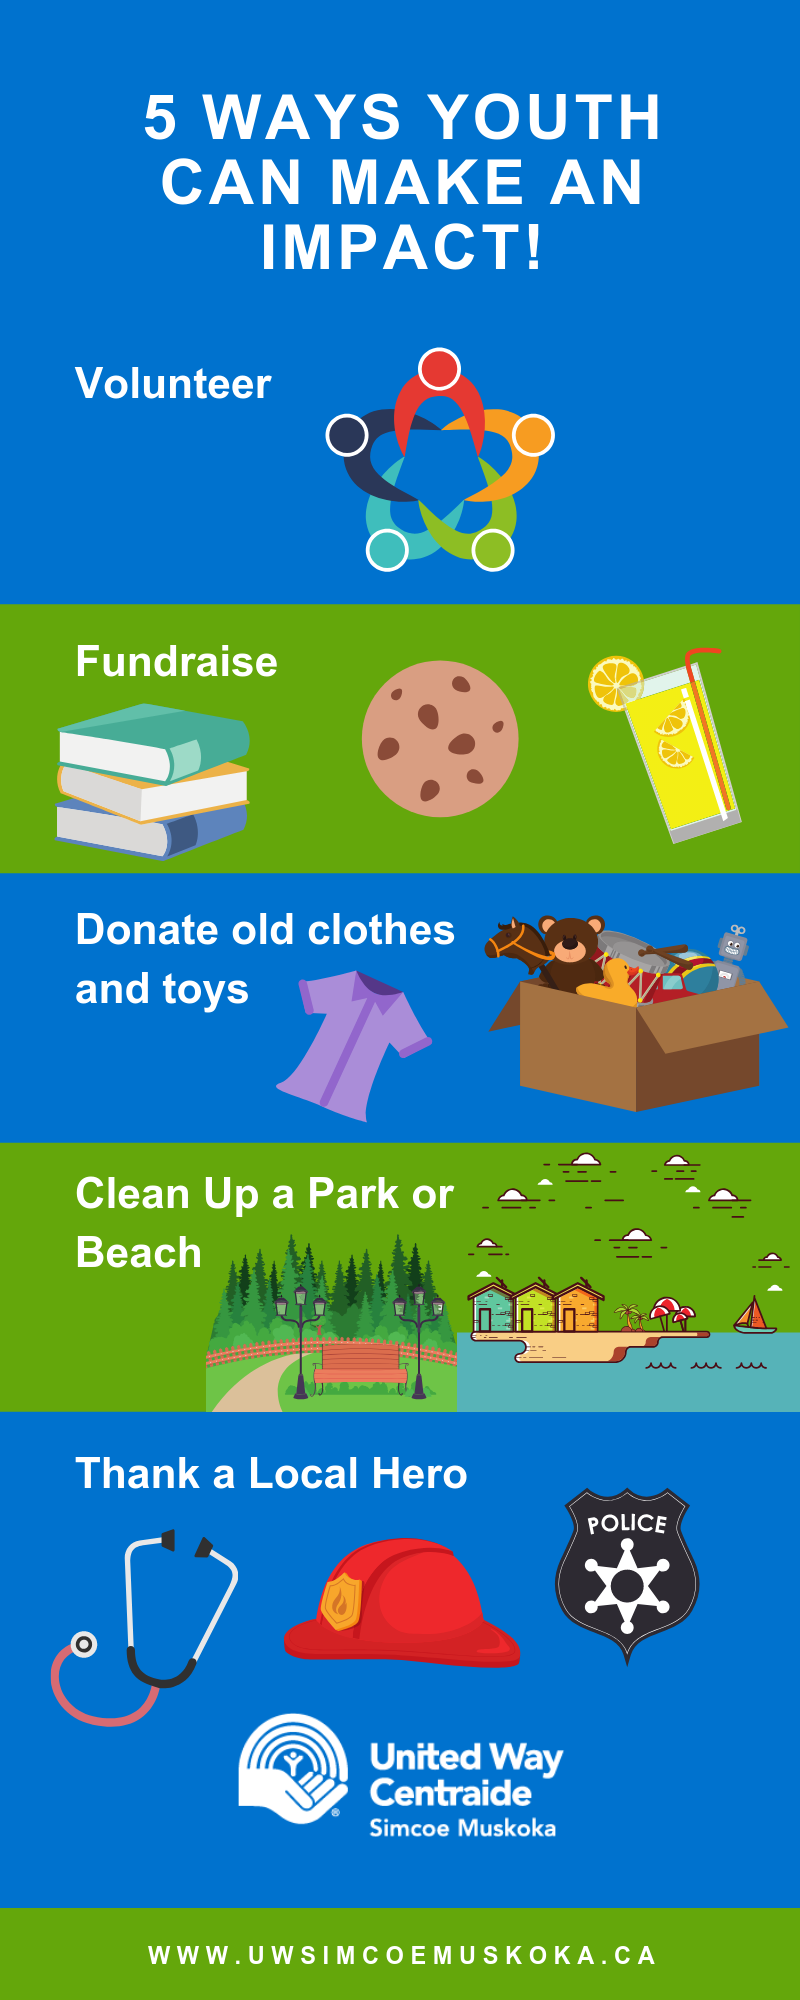 1. Volunteer 2. Fundraise 3. Donate Unwanted Clothes and Toys 4. Clean Up a Park or Beach 5. Thank a Local Hero